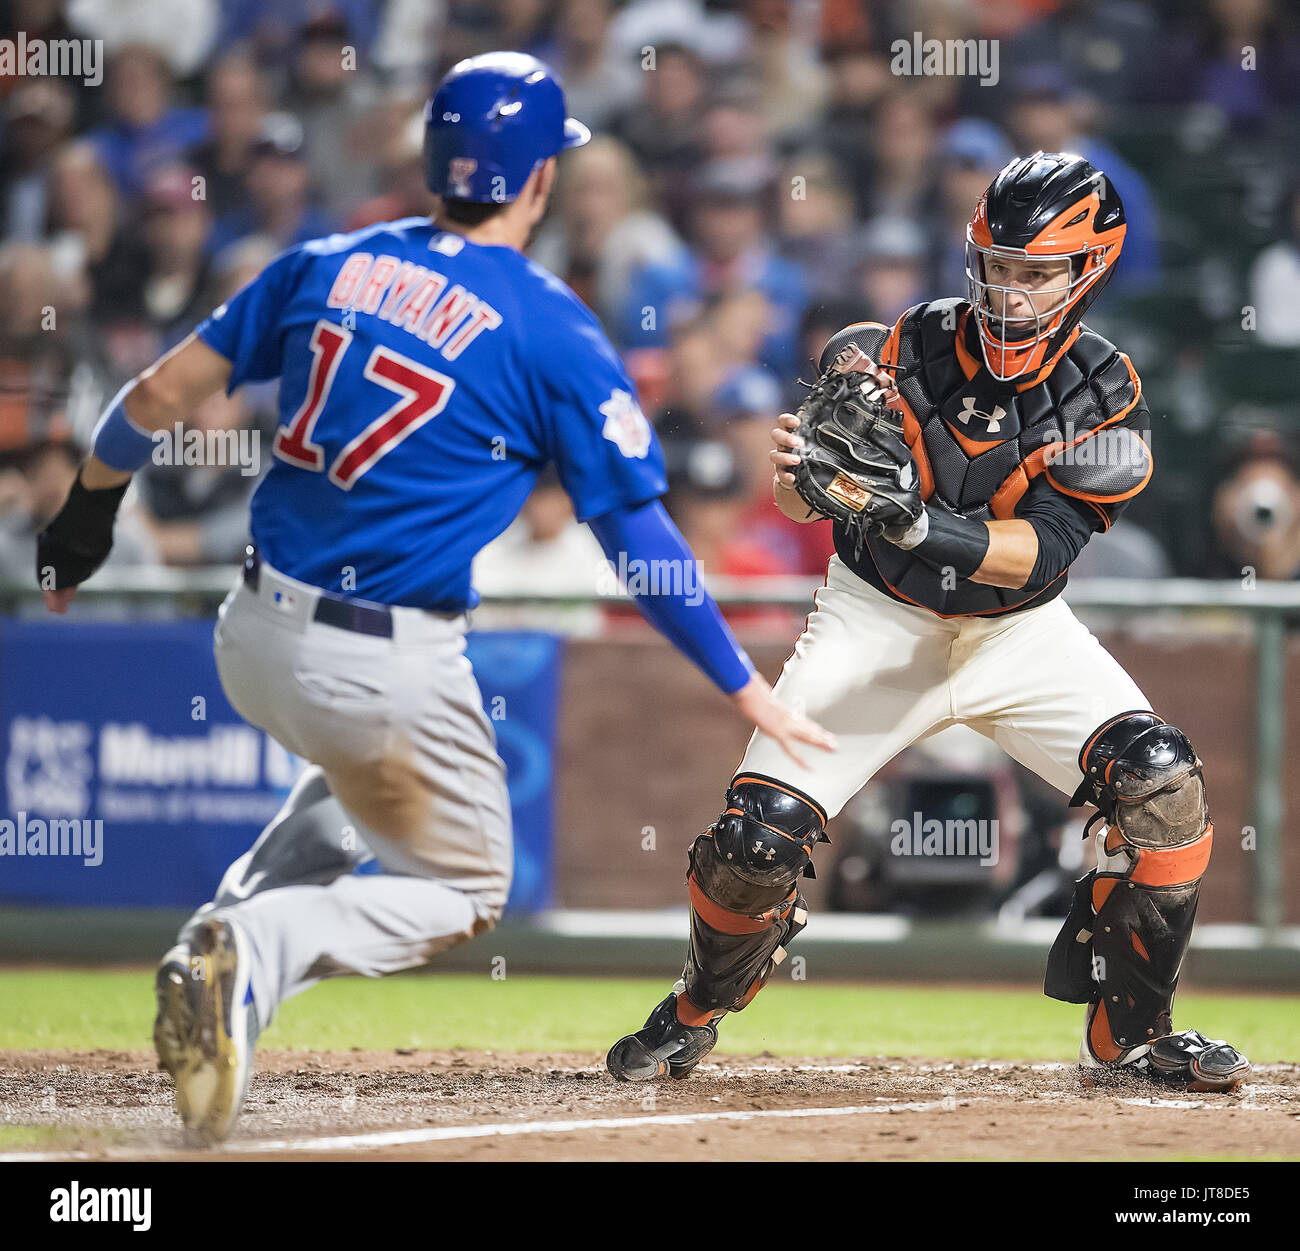 San Francisco, California, USA. 07th Aug, 2017. August 07, 2017: Chicago Cubs third baseman Kris Bryant (17) tagged out at home plate by Giants catcher Buster Posey (28) in the seventh inning, during a MLB game between the Chicago Cubs and the San Francisco Giants at AT&T Park in San Francisco, California. Valerie Shoaps/CSM Credit: Cal Sport Media/Alamy Live News - Stock Image